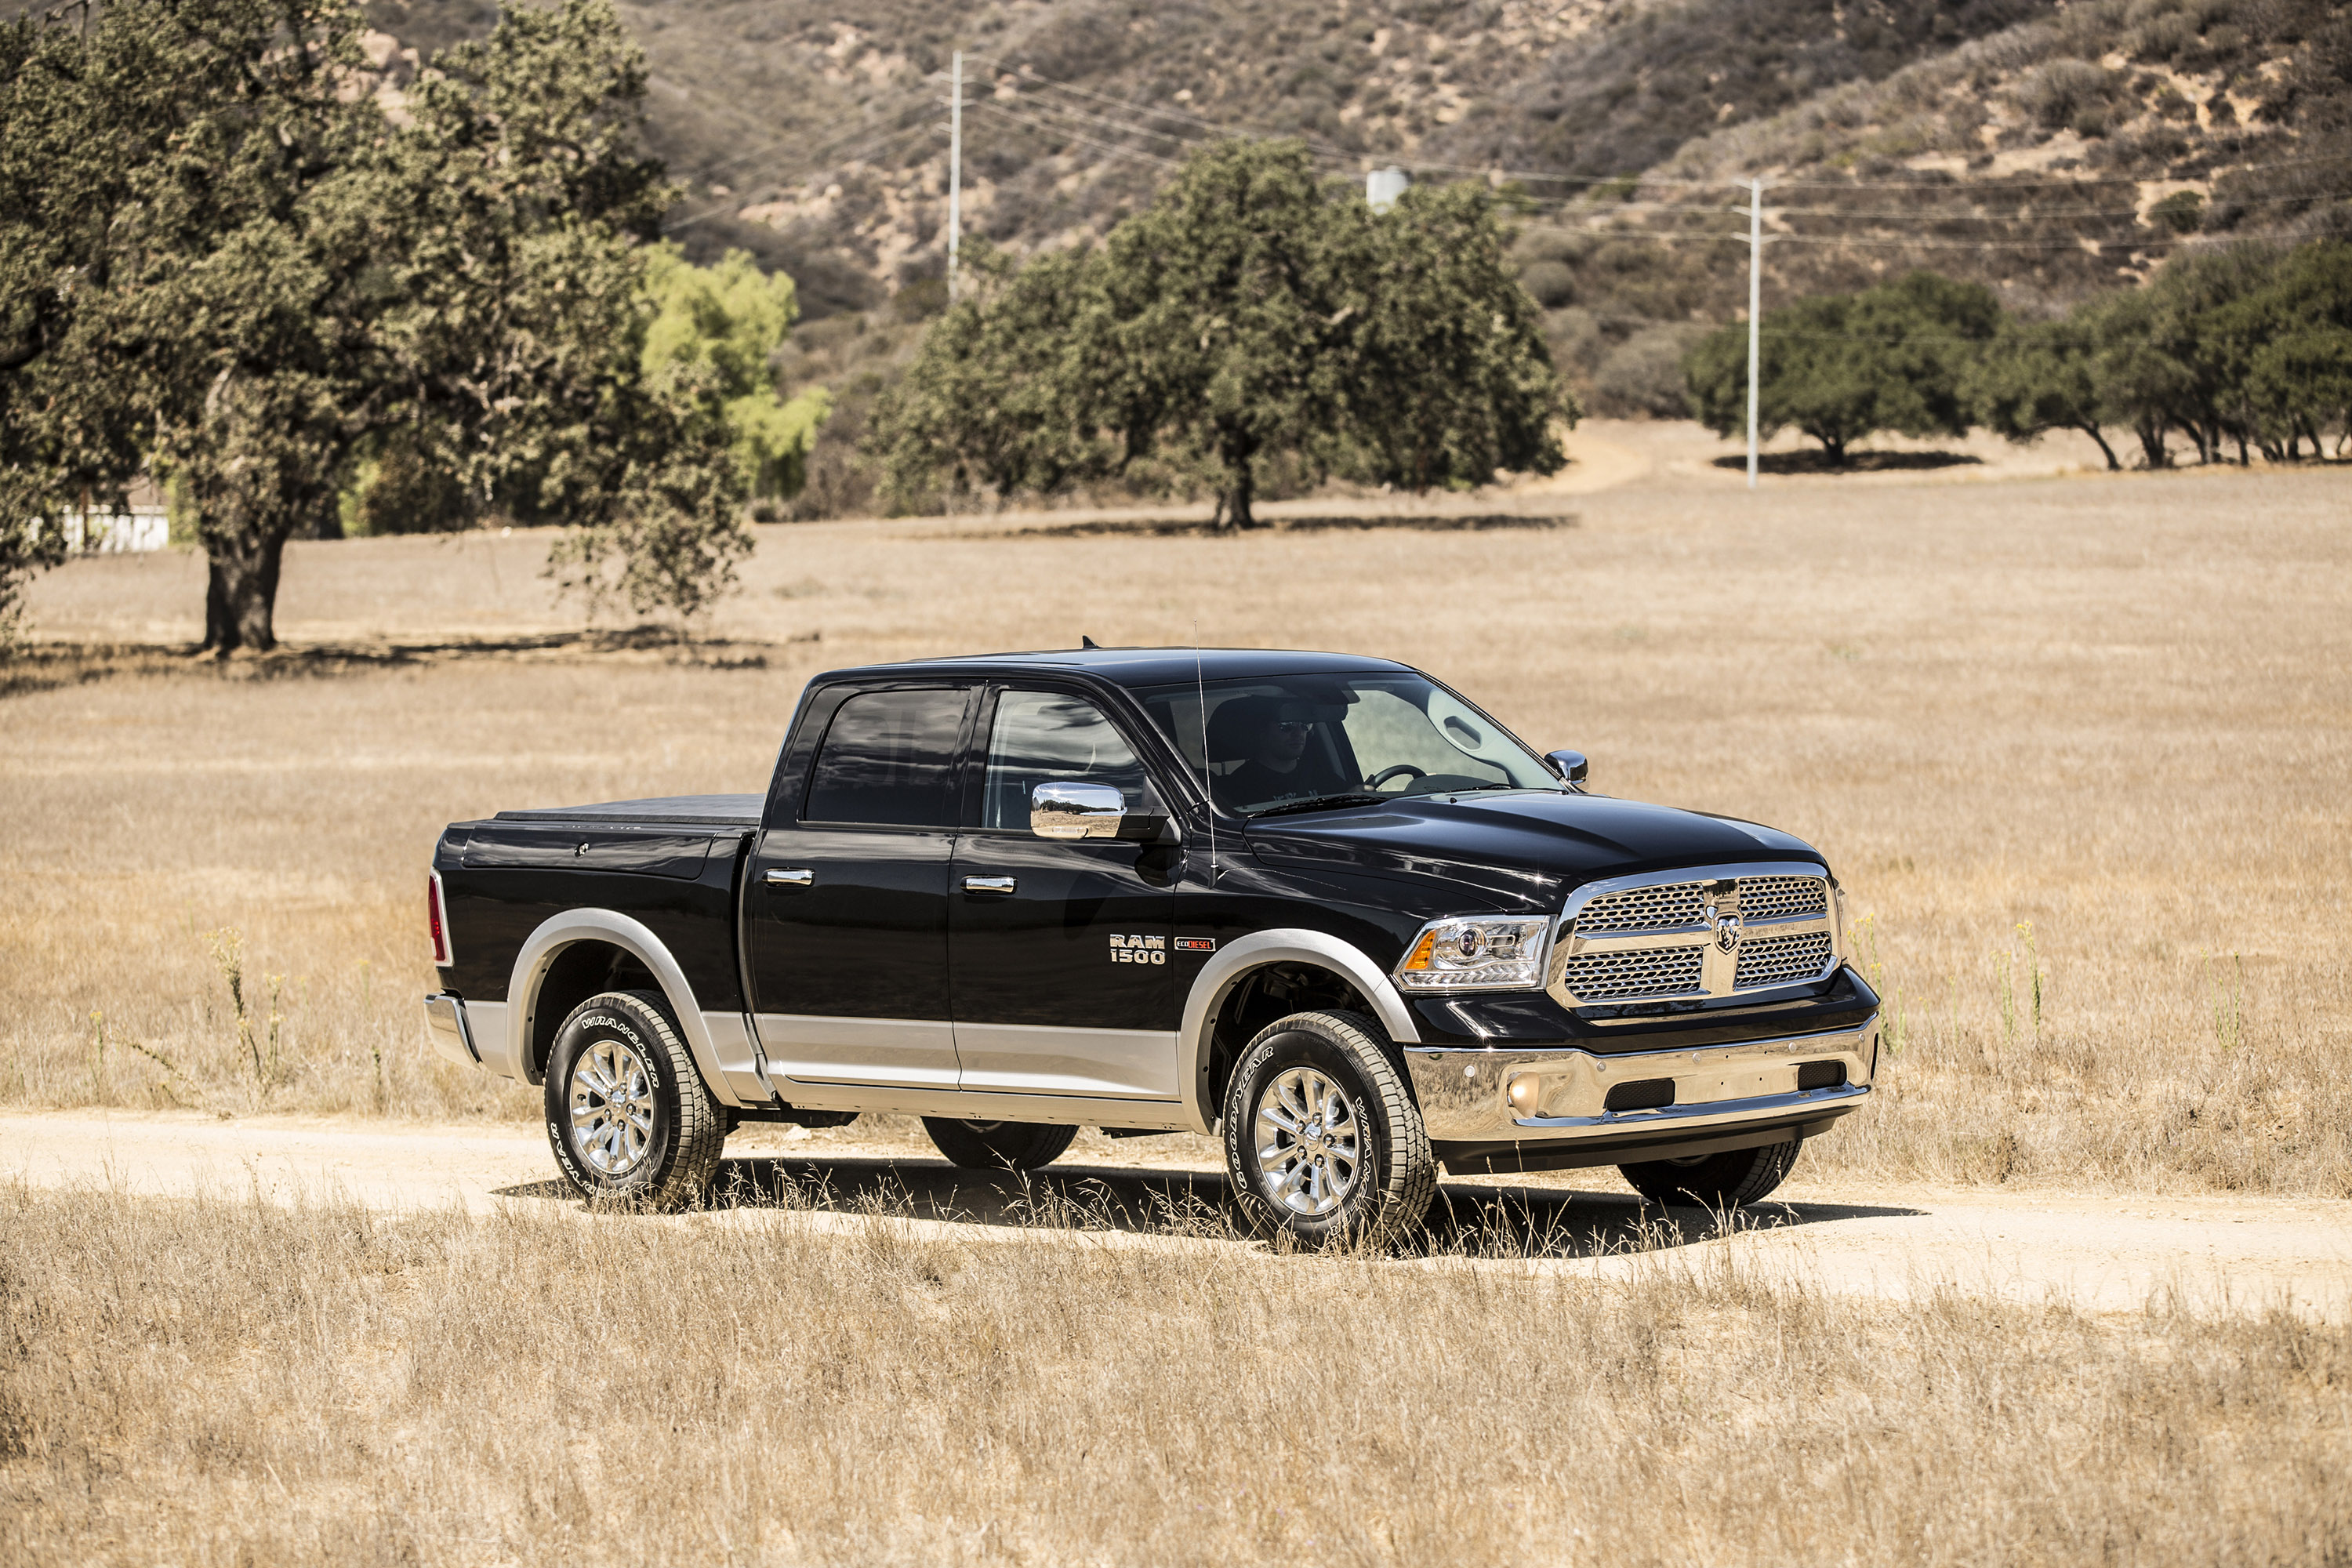 2015 dodge ram 1500 laramie longhorn ecodiesel hd. Black Bedroom Furniture Sets. Home Design Ideas